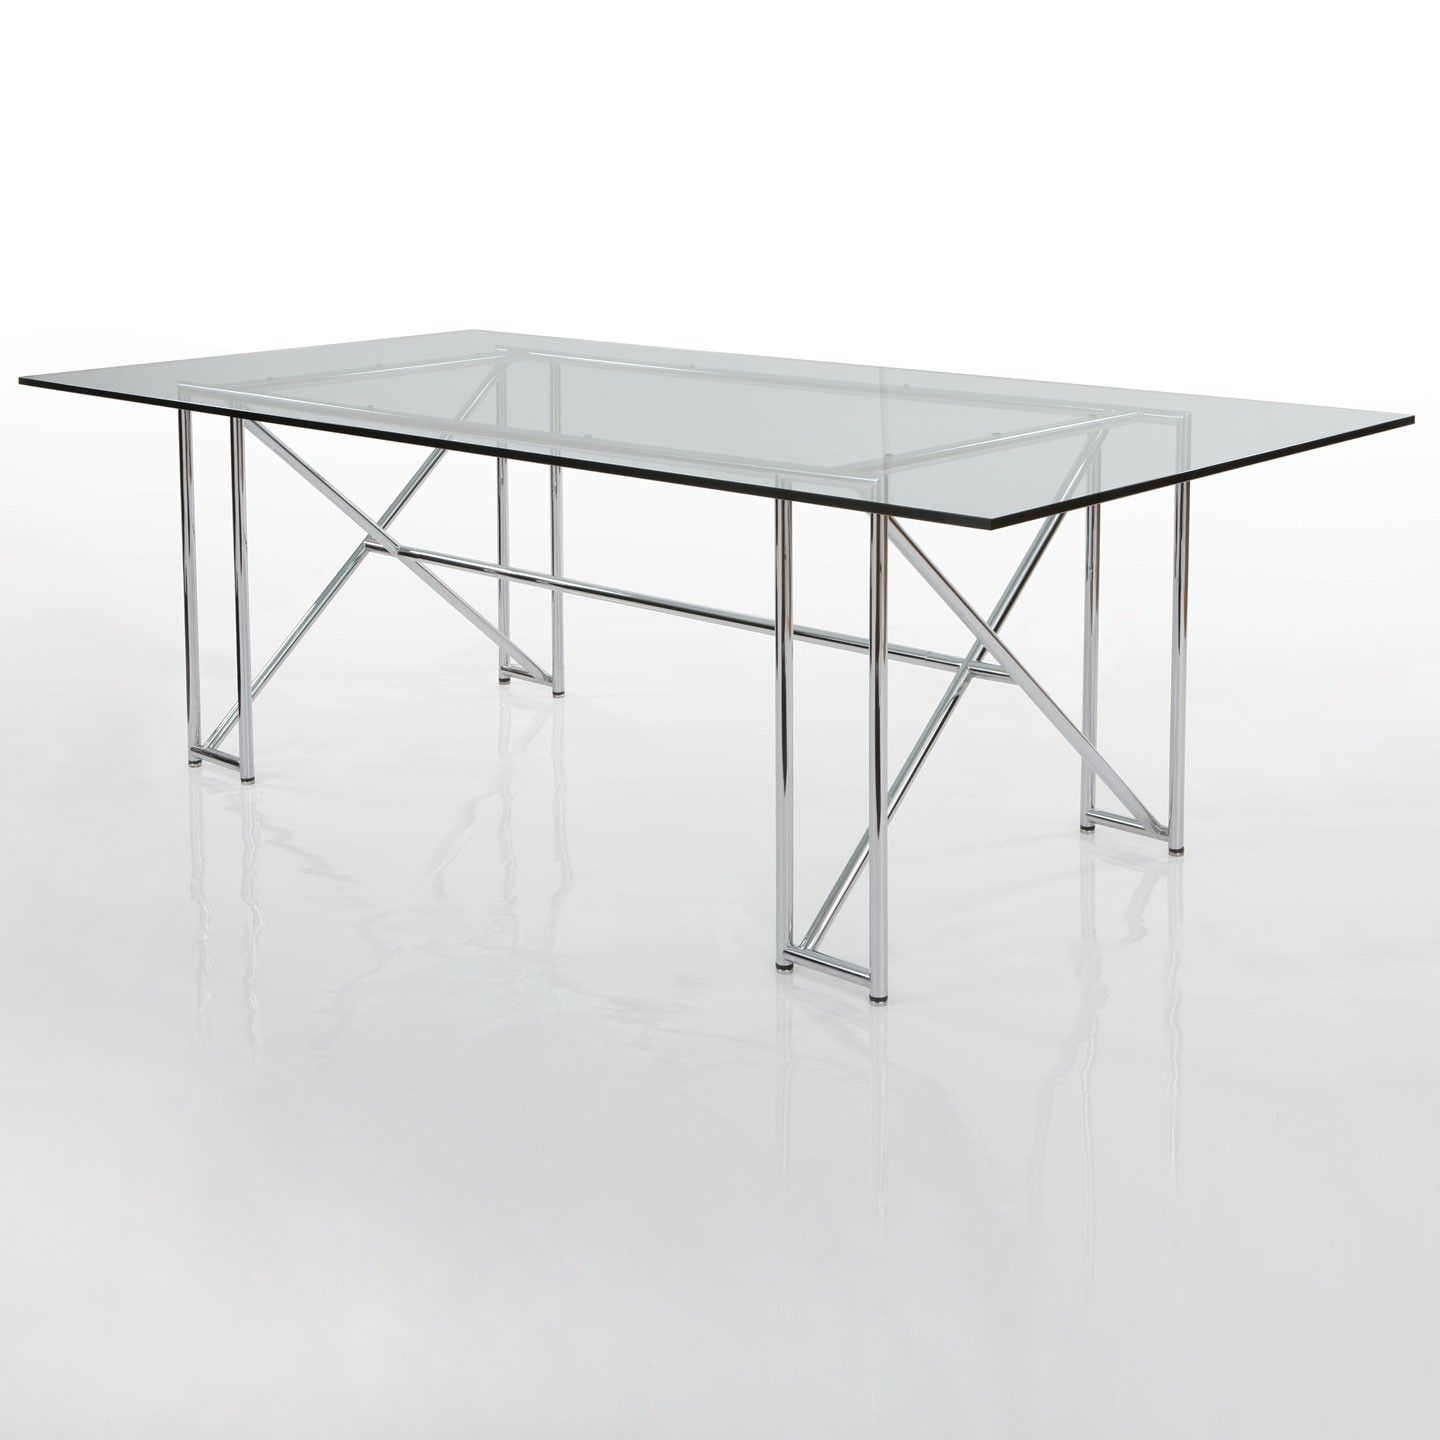 Double X dining table by Eileen Gray eileen gray